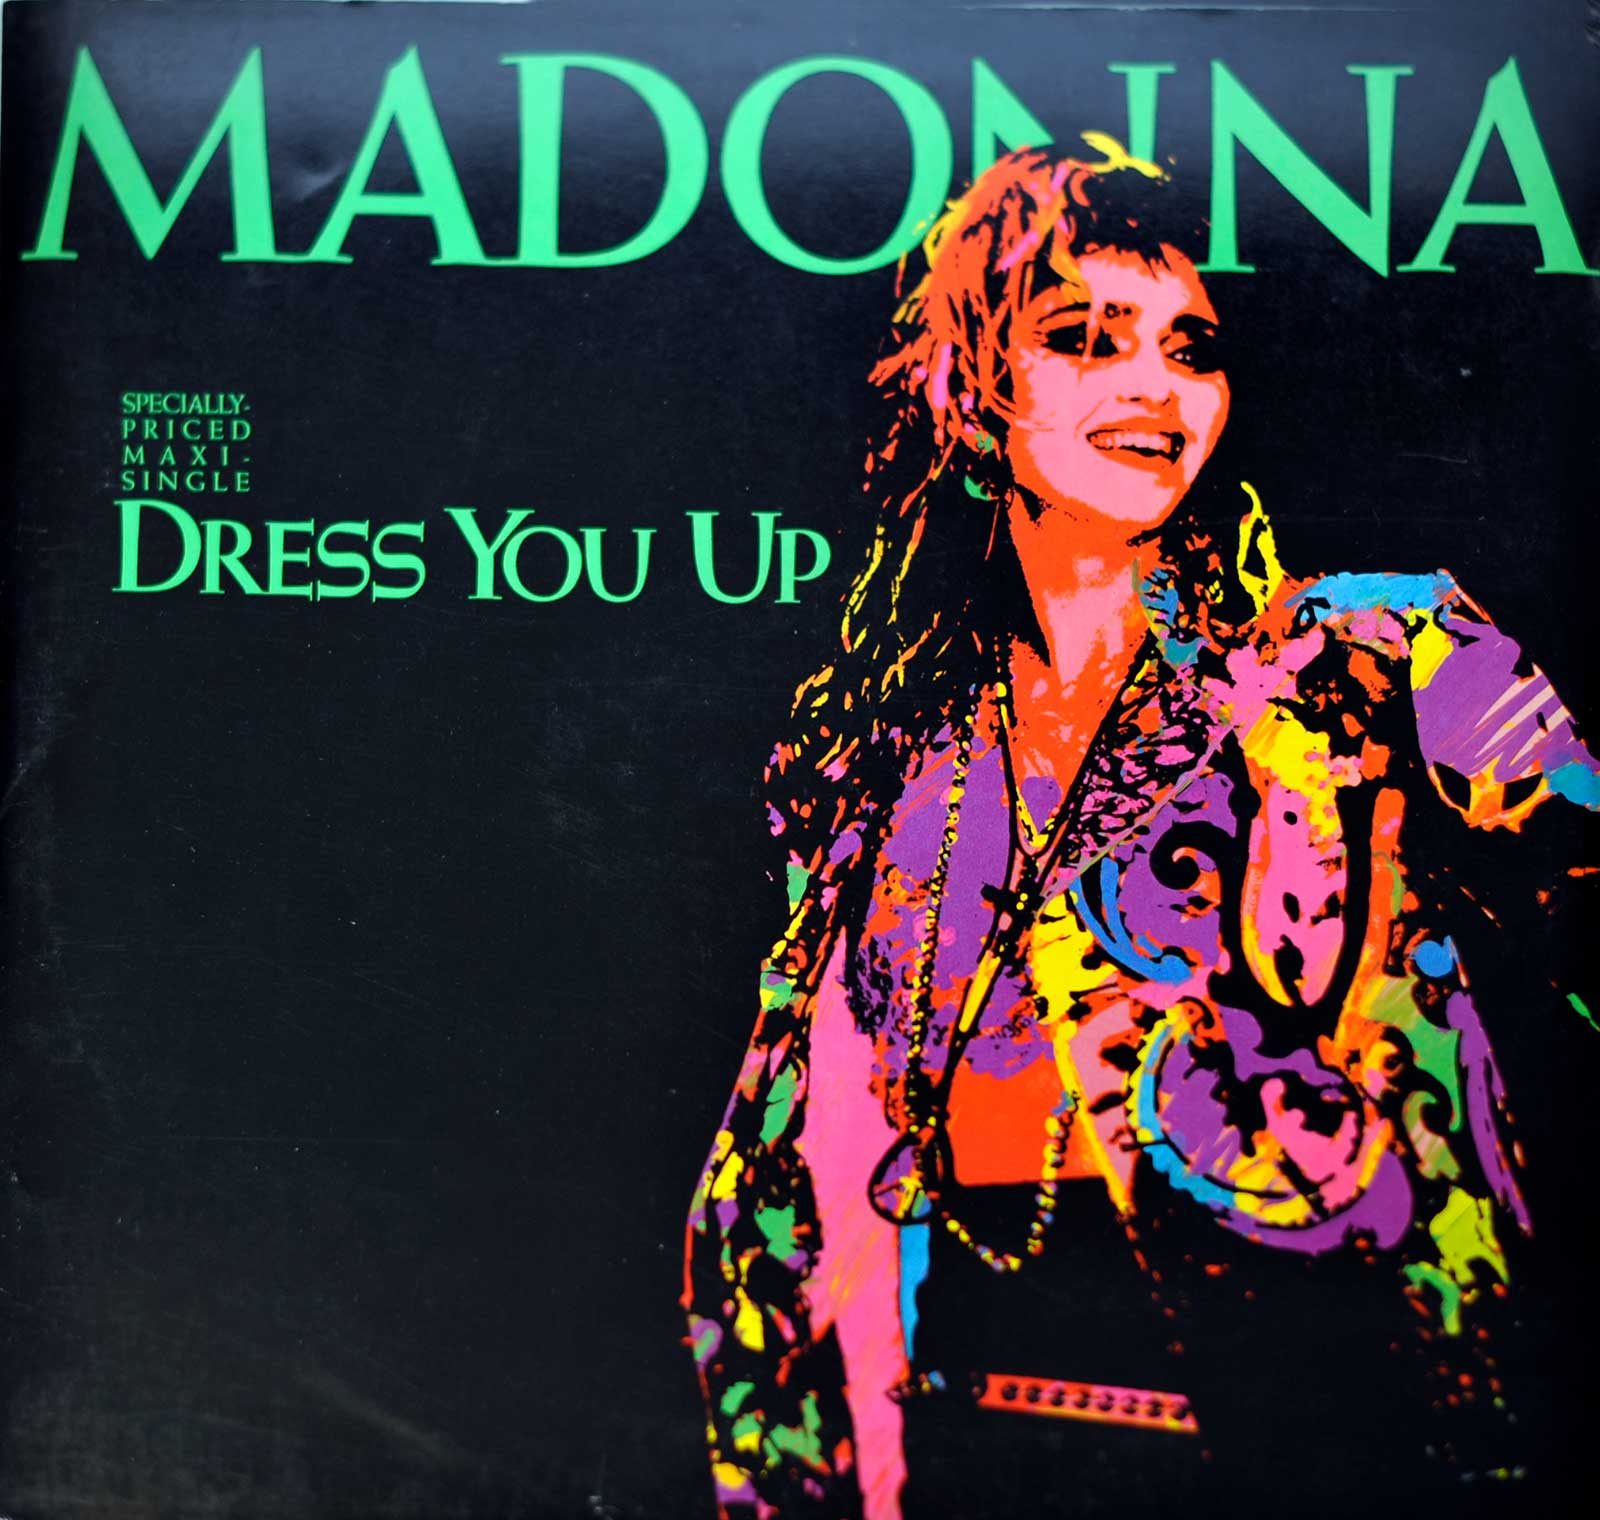 large photo of the album front cover of: Madonna Dress You Up